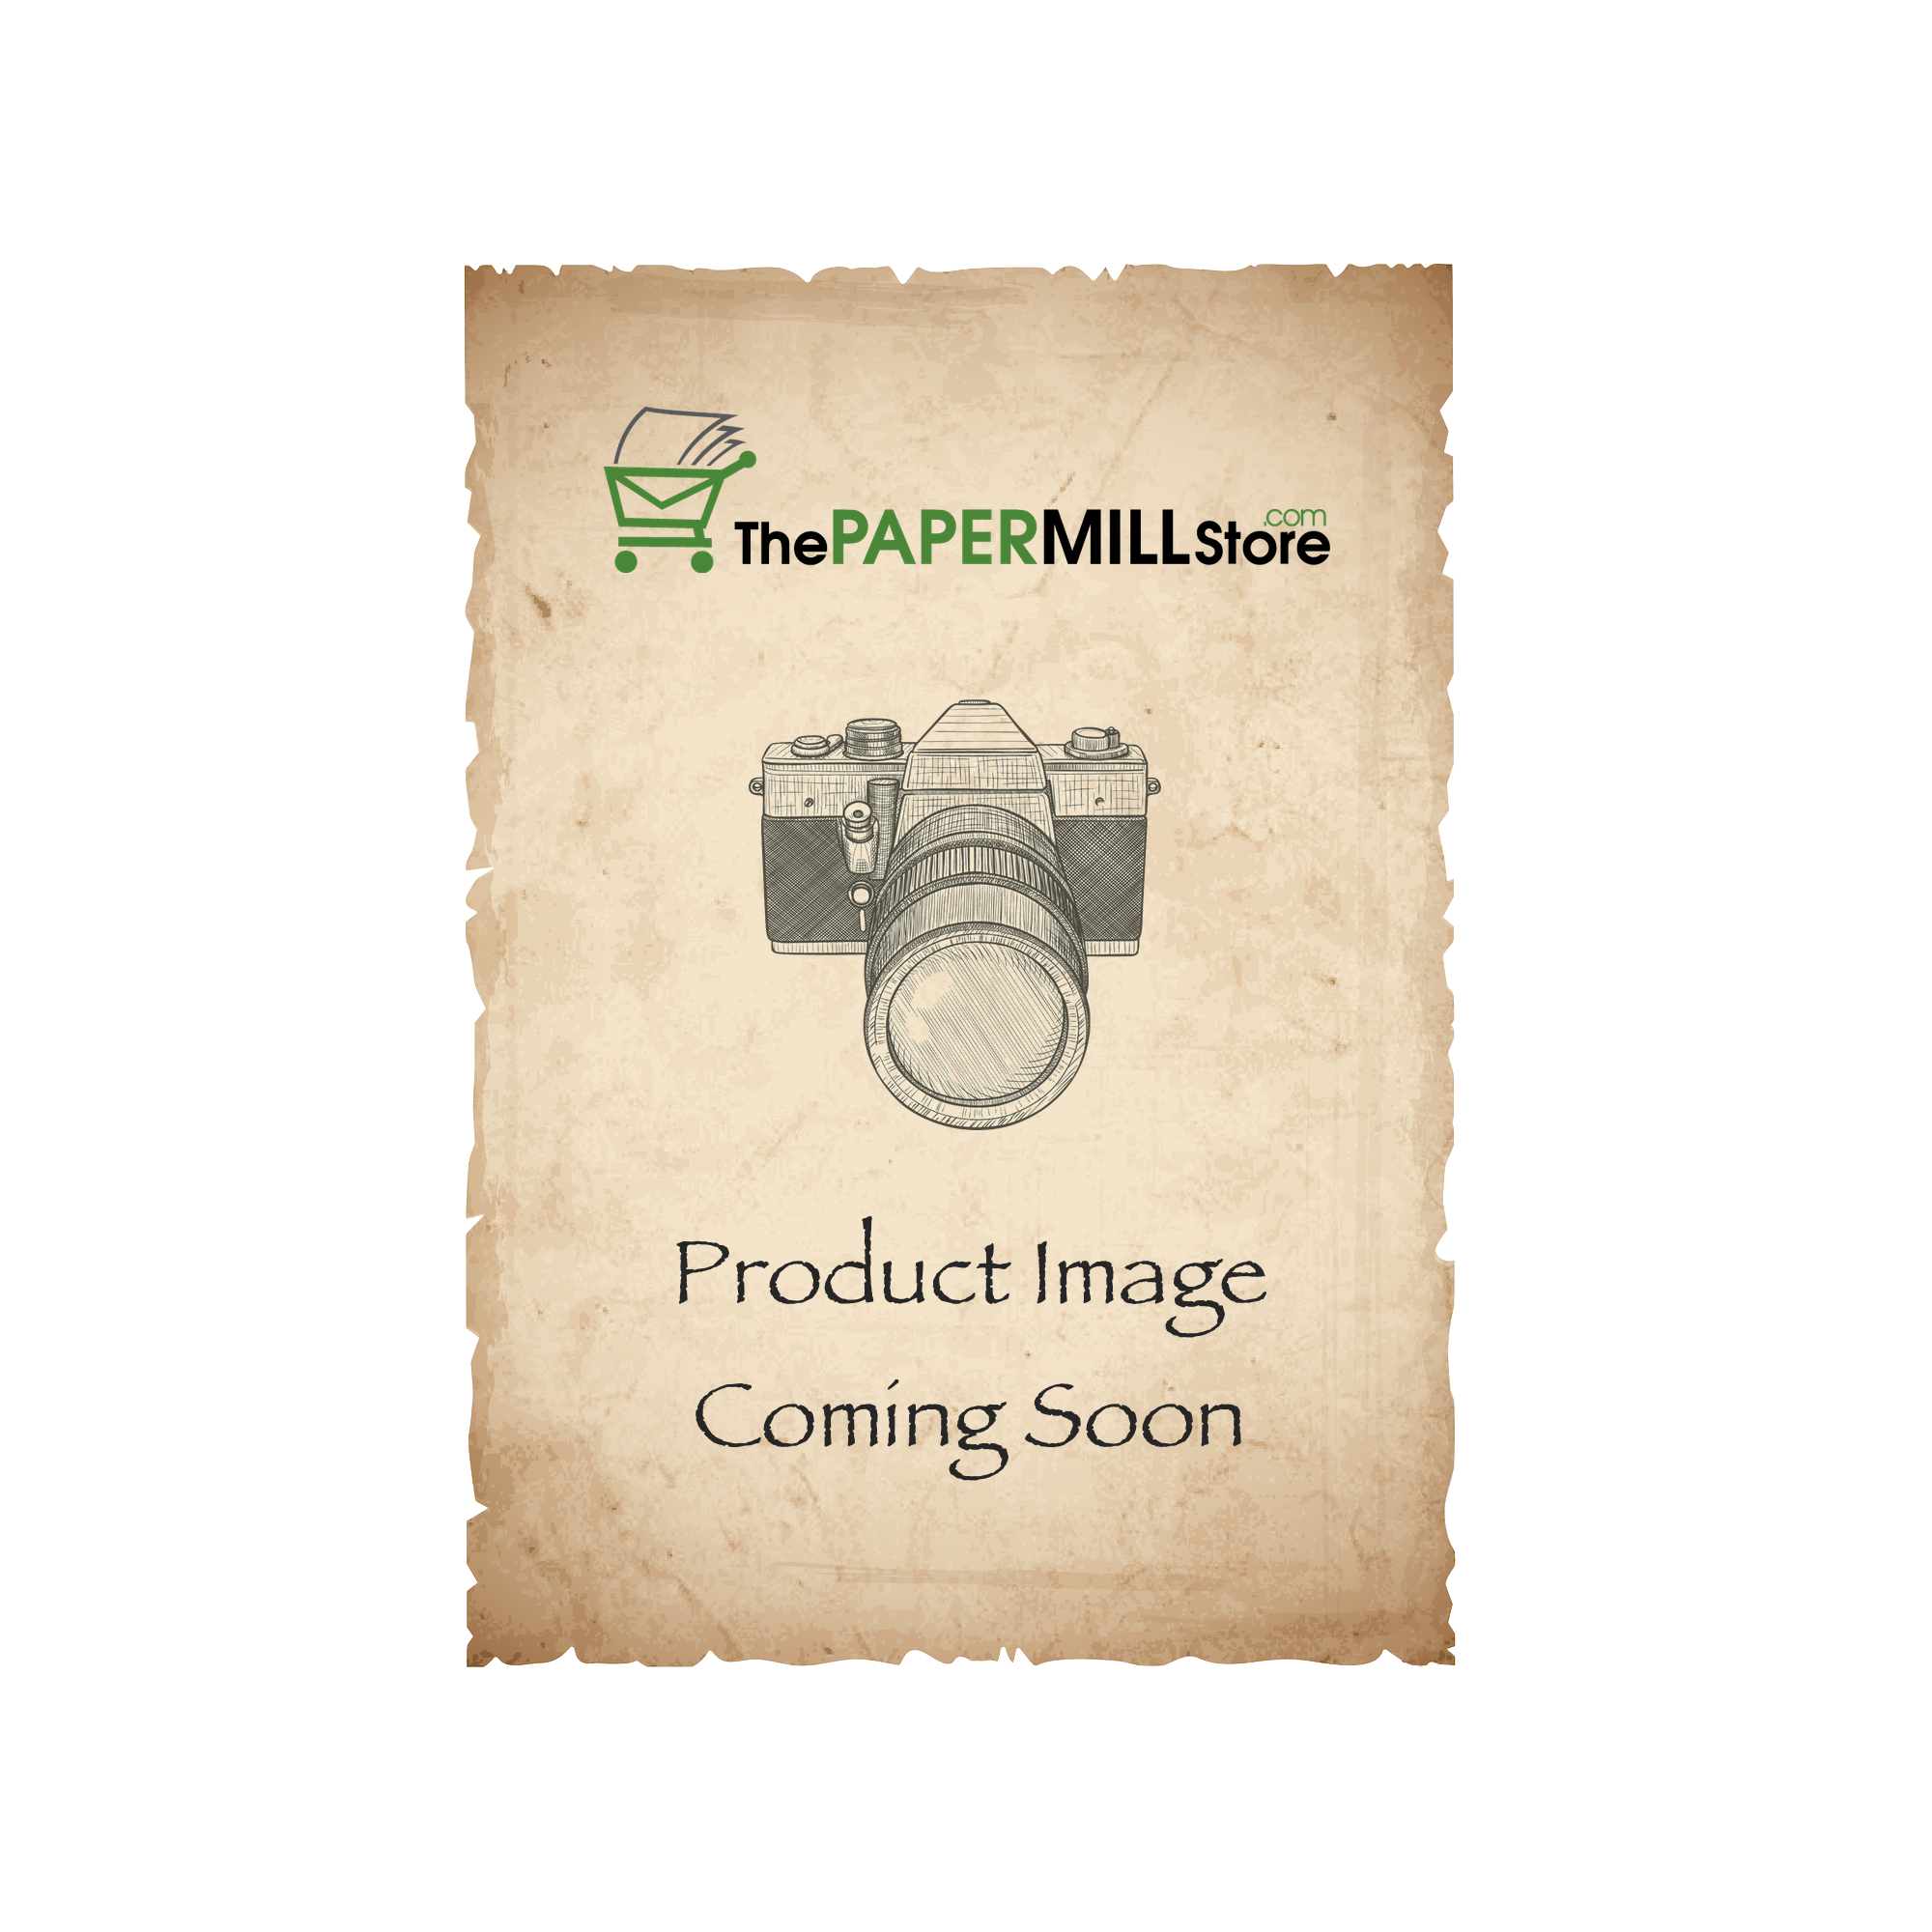 Loop Silk Coated i-Tone White Paper - 18 x 12 in 130 lb Cover DT Silk Coated C/2S  50% Recycled 125 per Package